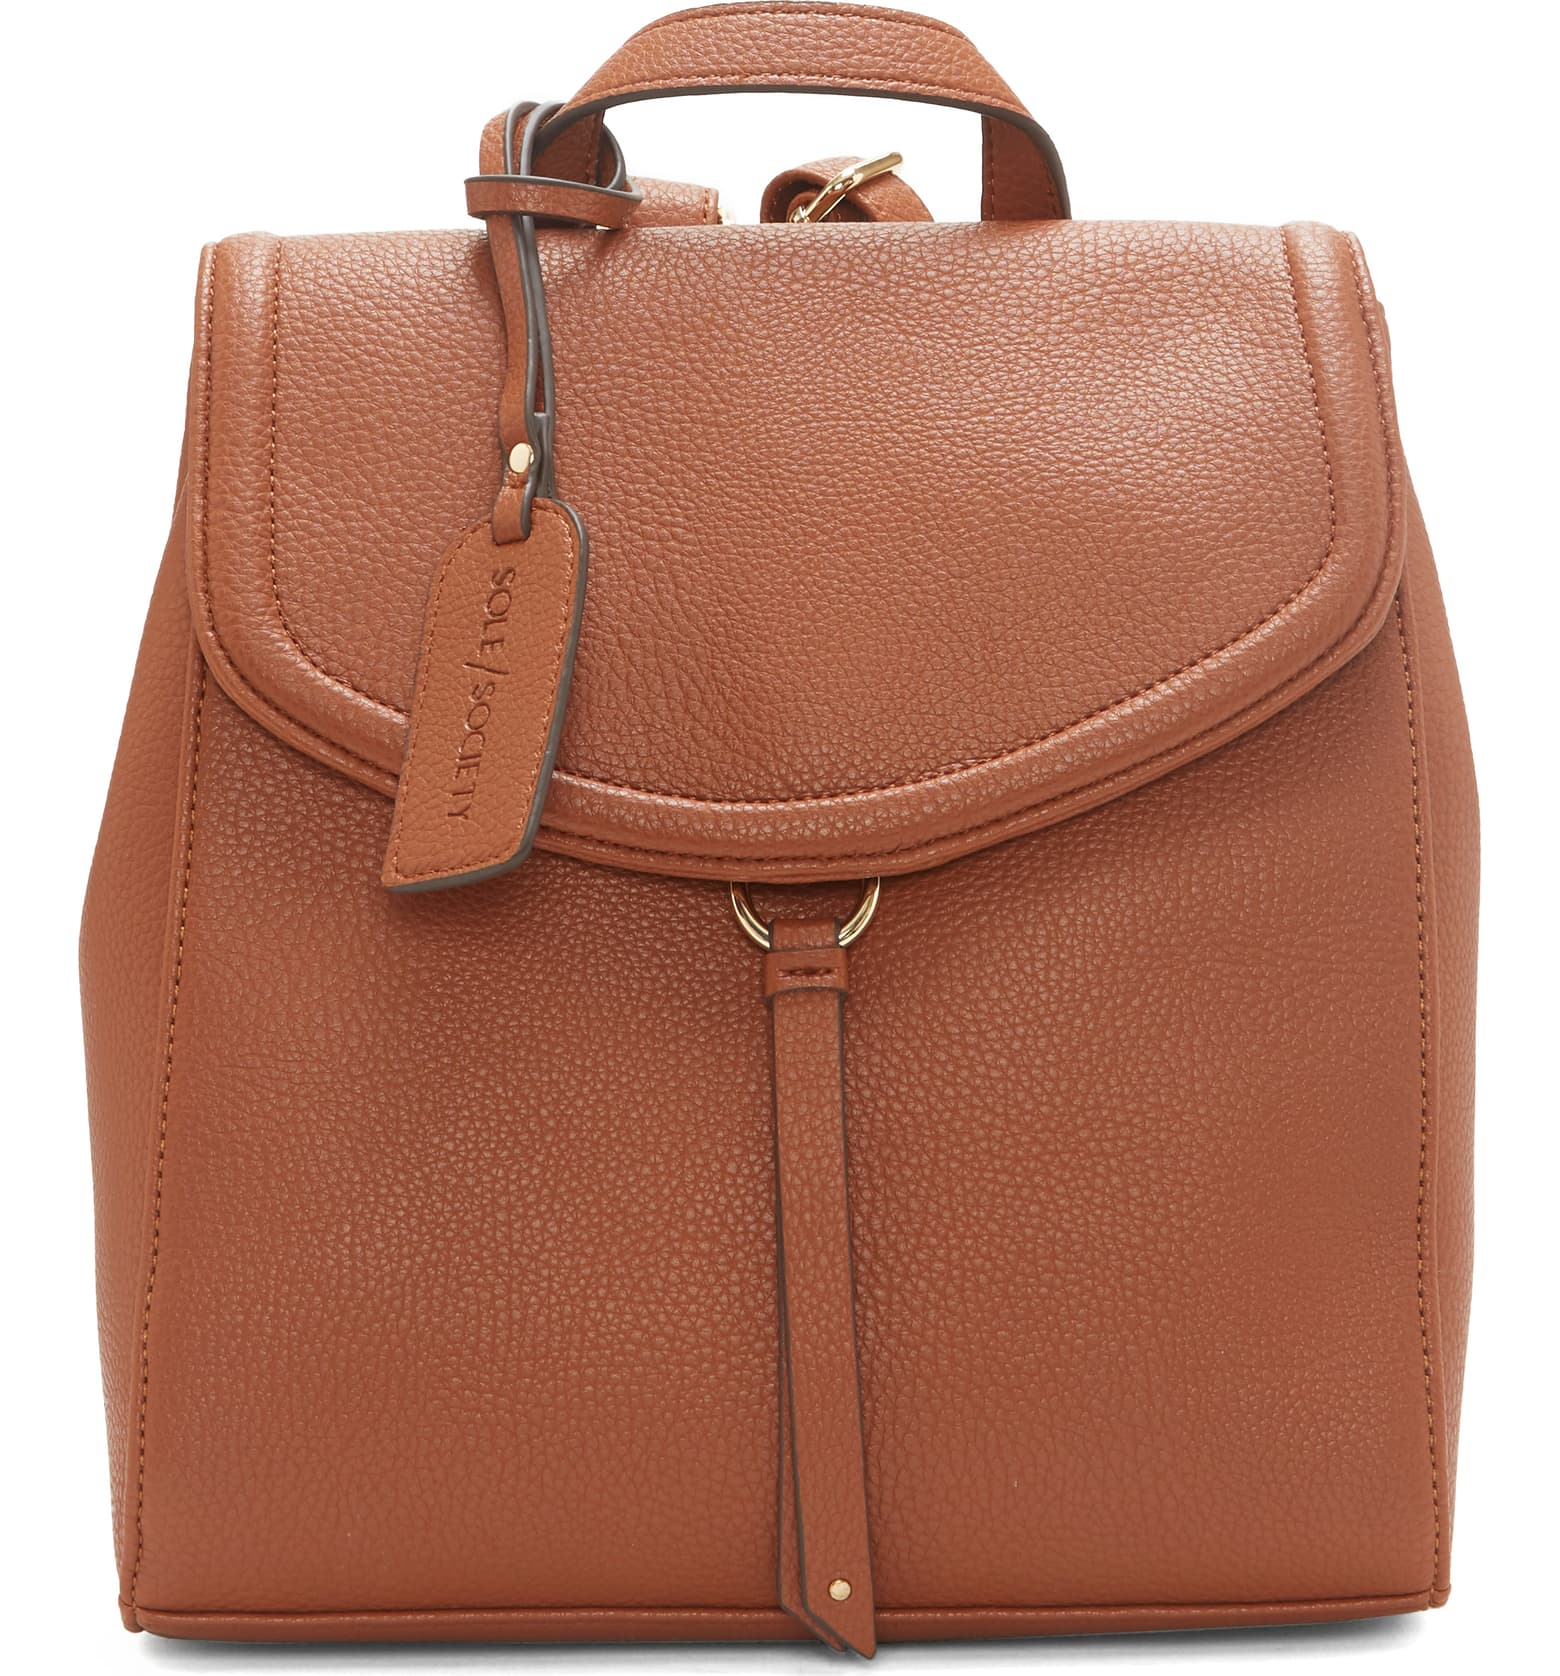 Cognac leather-free knapsack